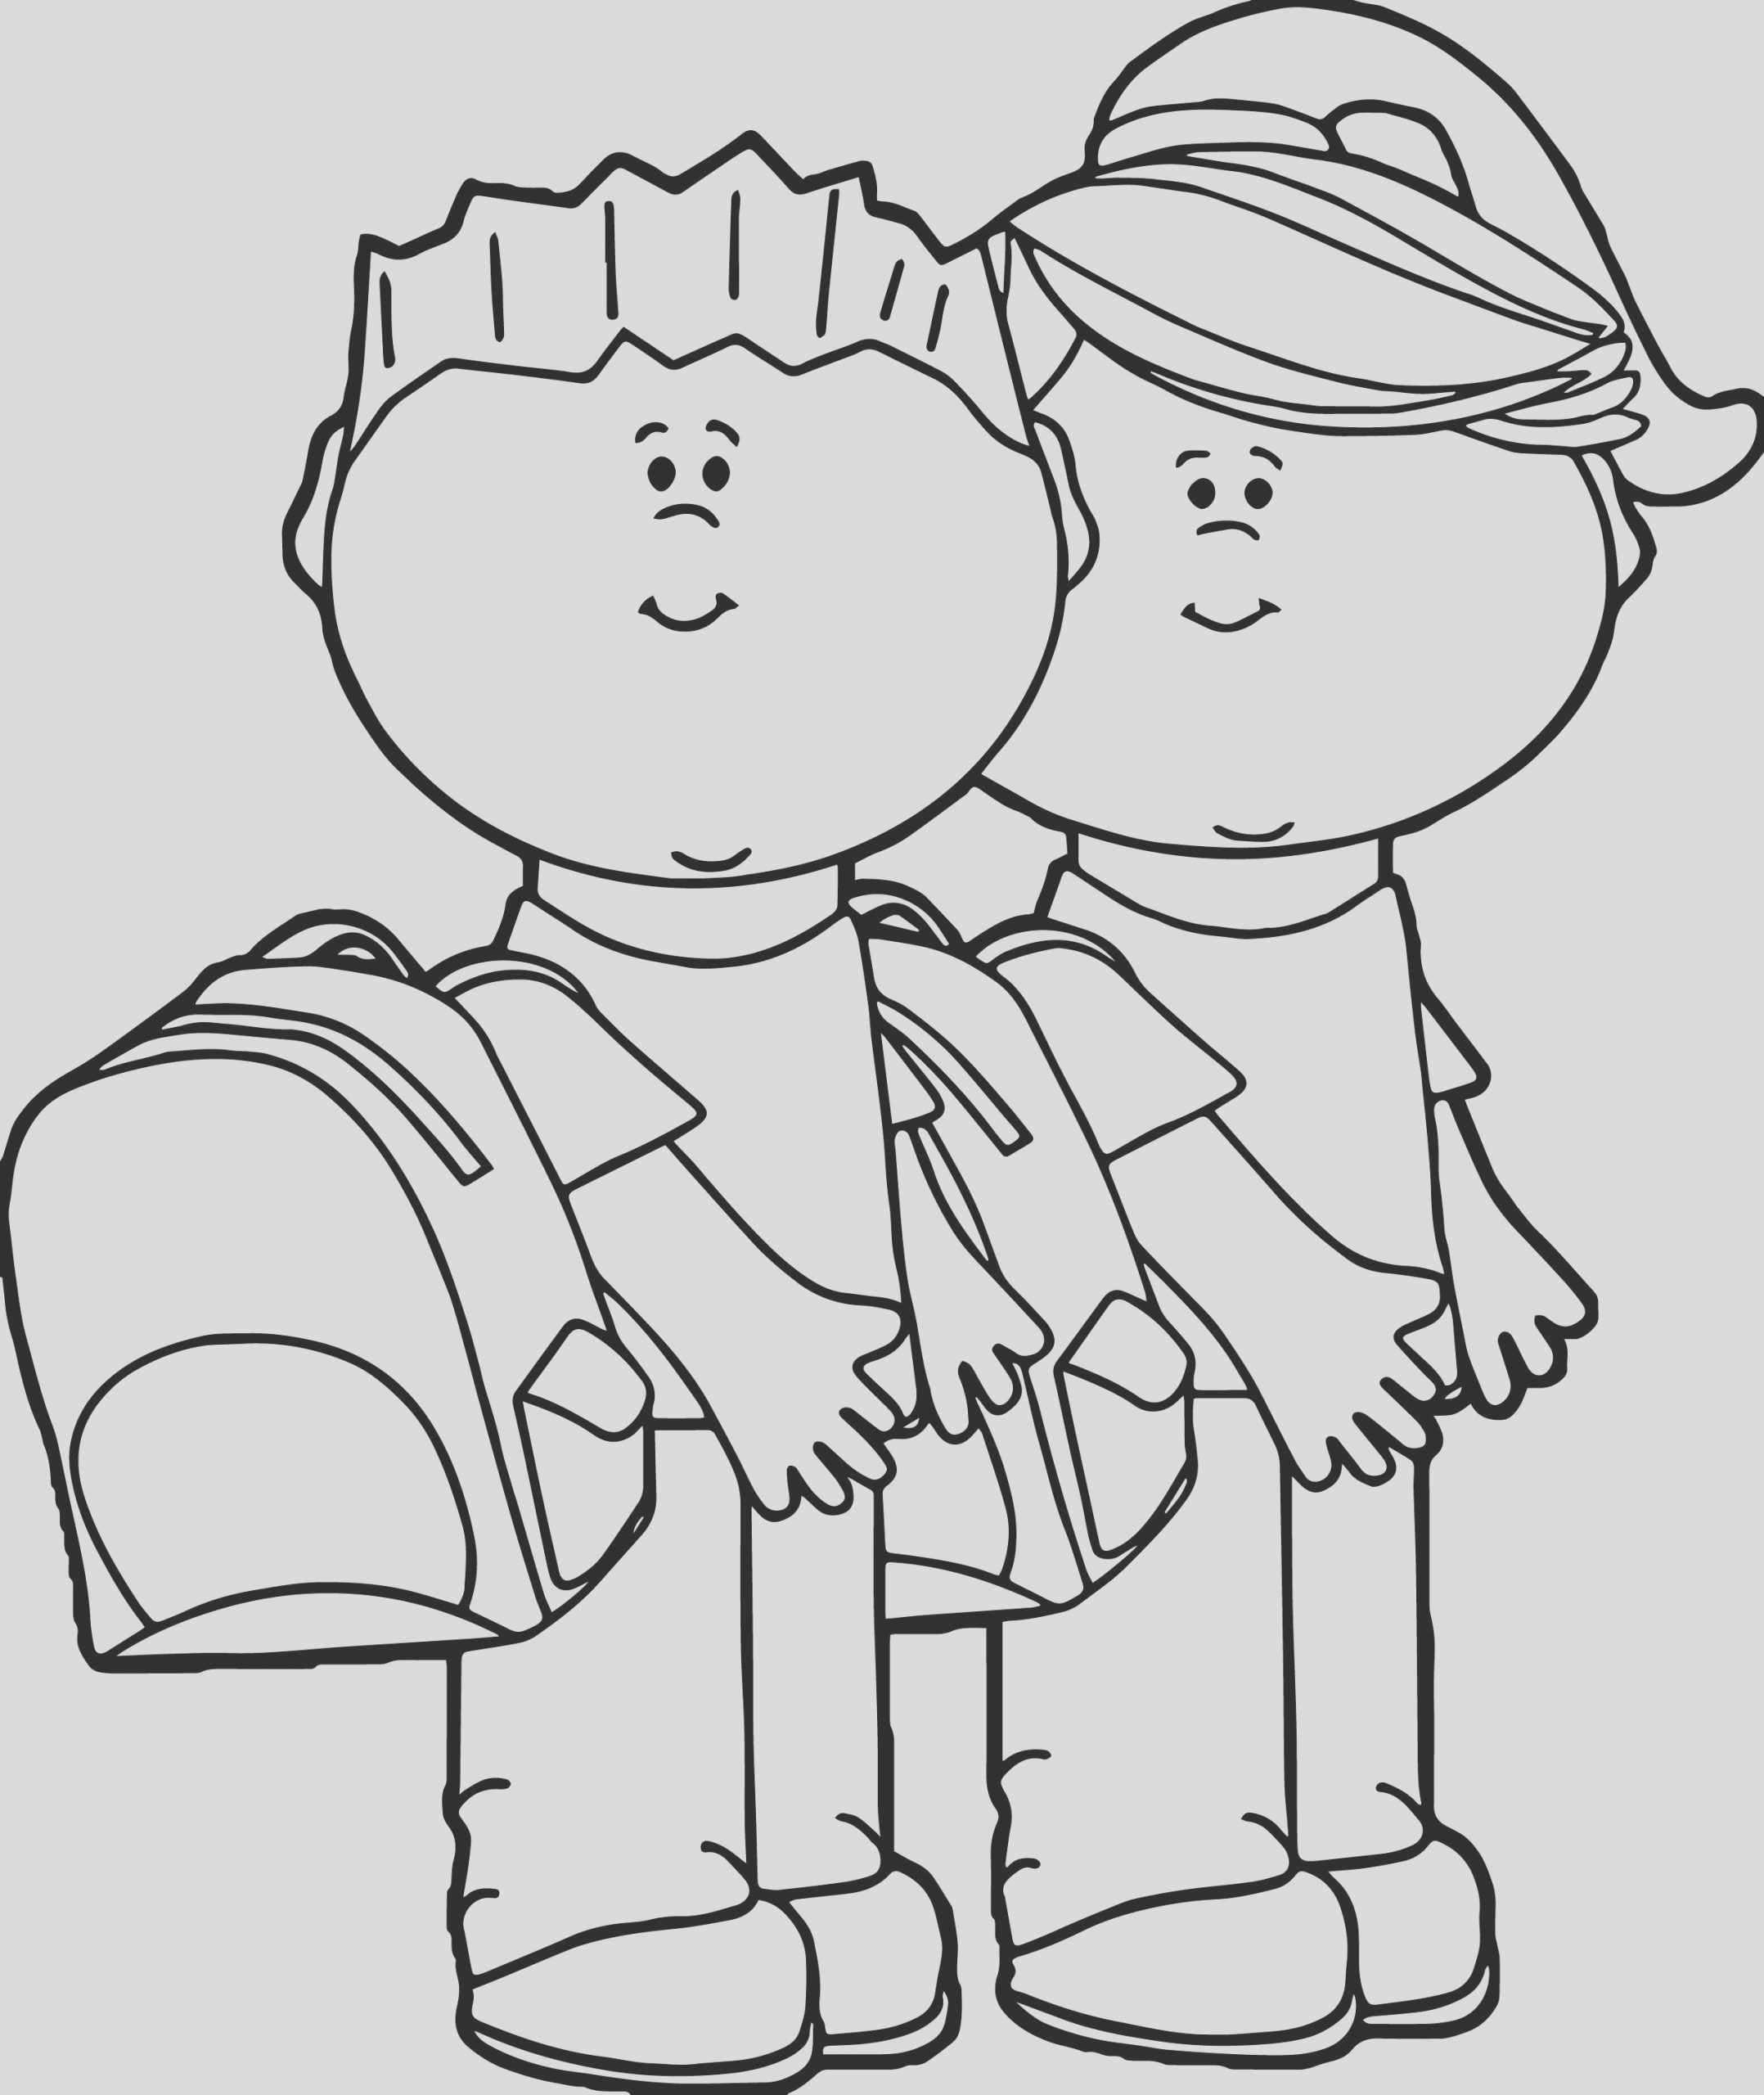 kids going school kids coloring page